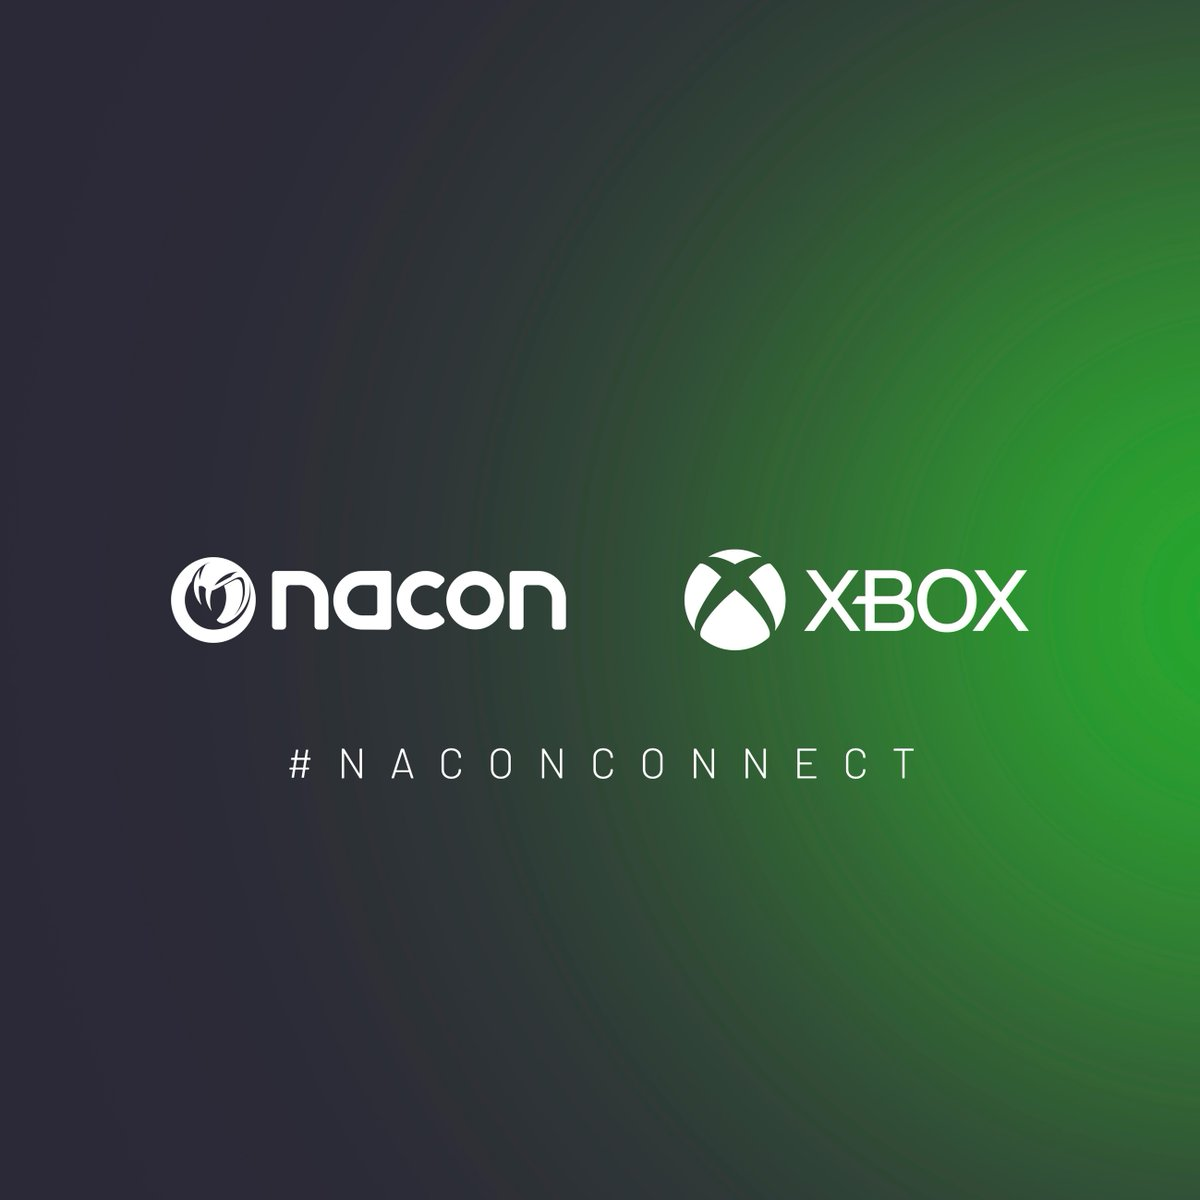 We are pleased to announce a new global licencing agreement with @Microsoft for the creation of officially licensed accessories designed for @Xbox One, #XboxSeriesX and #PC.  Stay tuned for more!  #NaconConnect https://t.co/f6WhbDWB0E